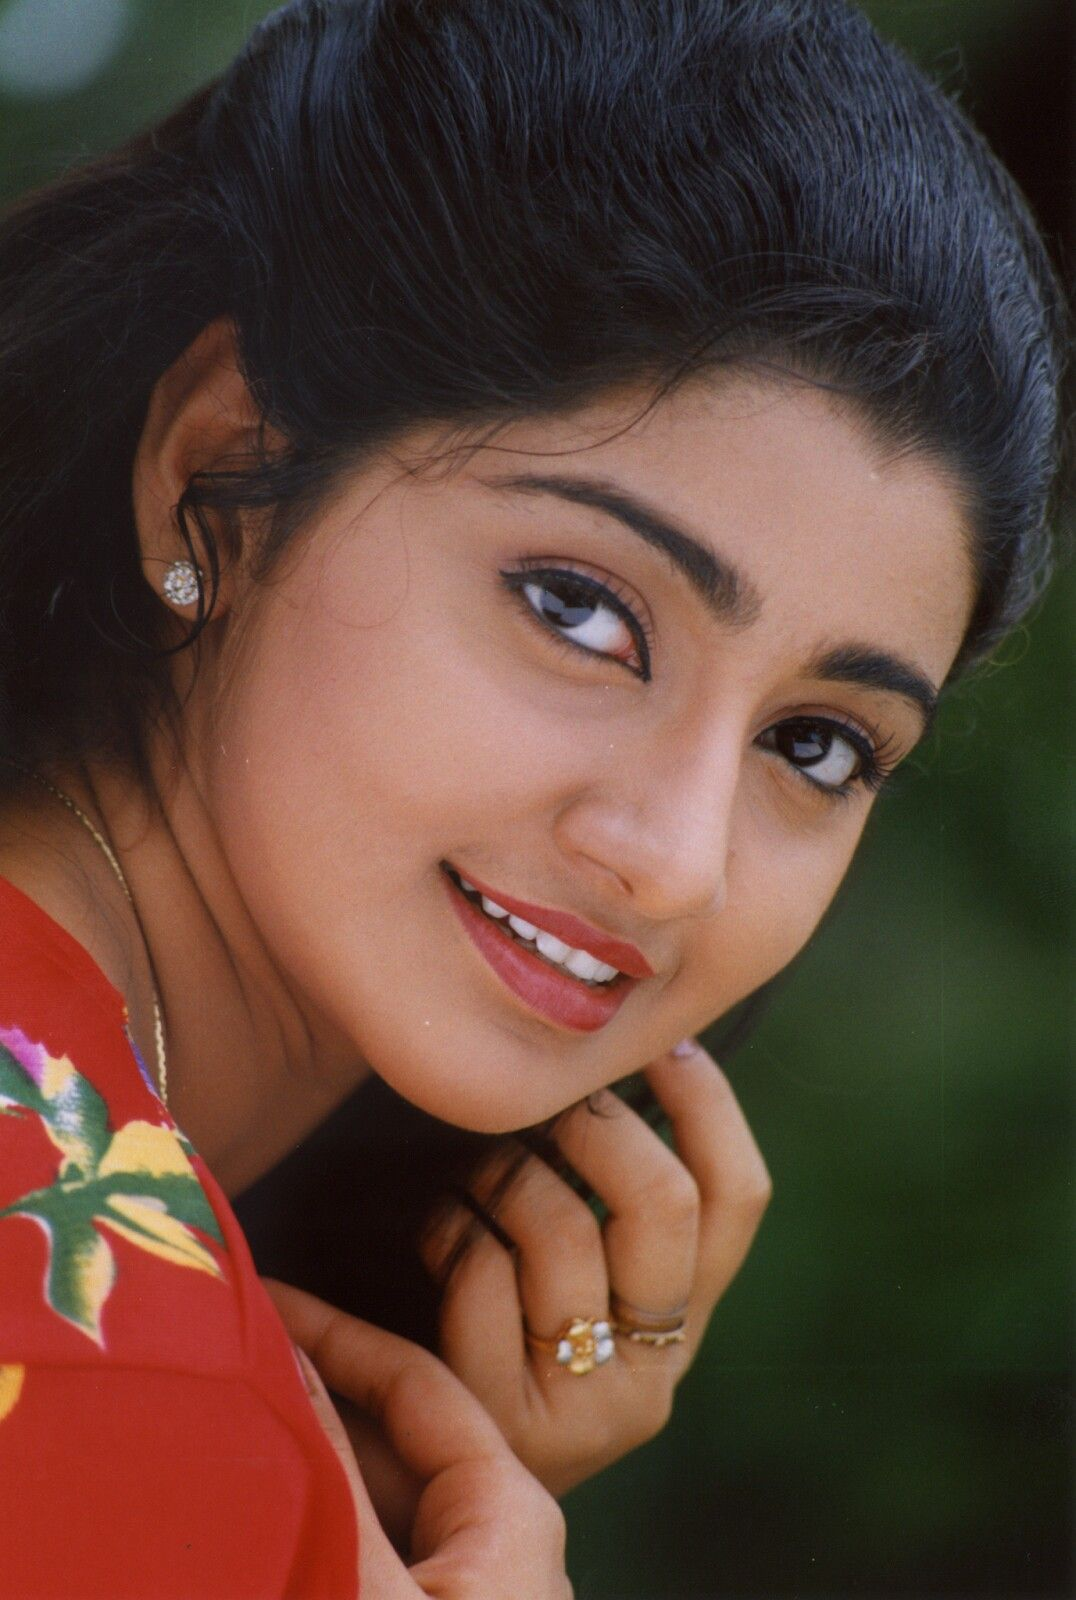 Divyaa Unni has acted in over 50 films.